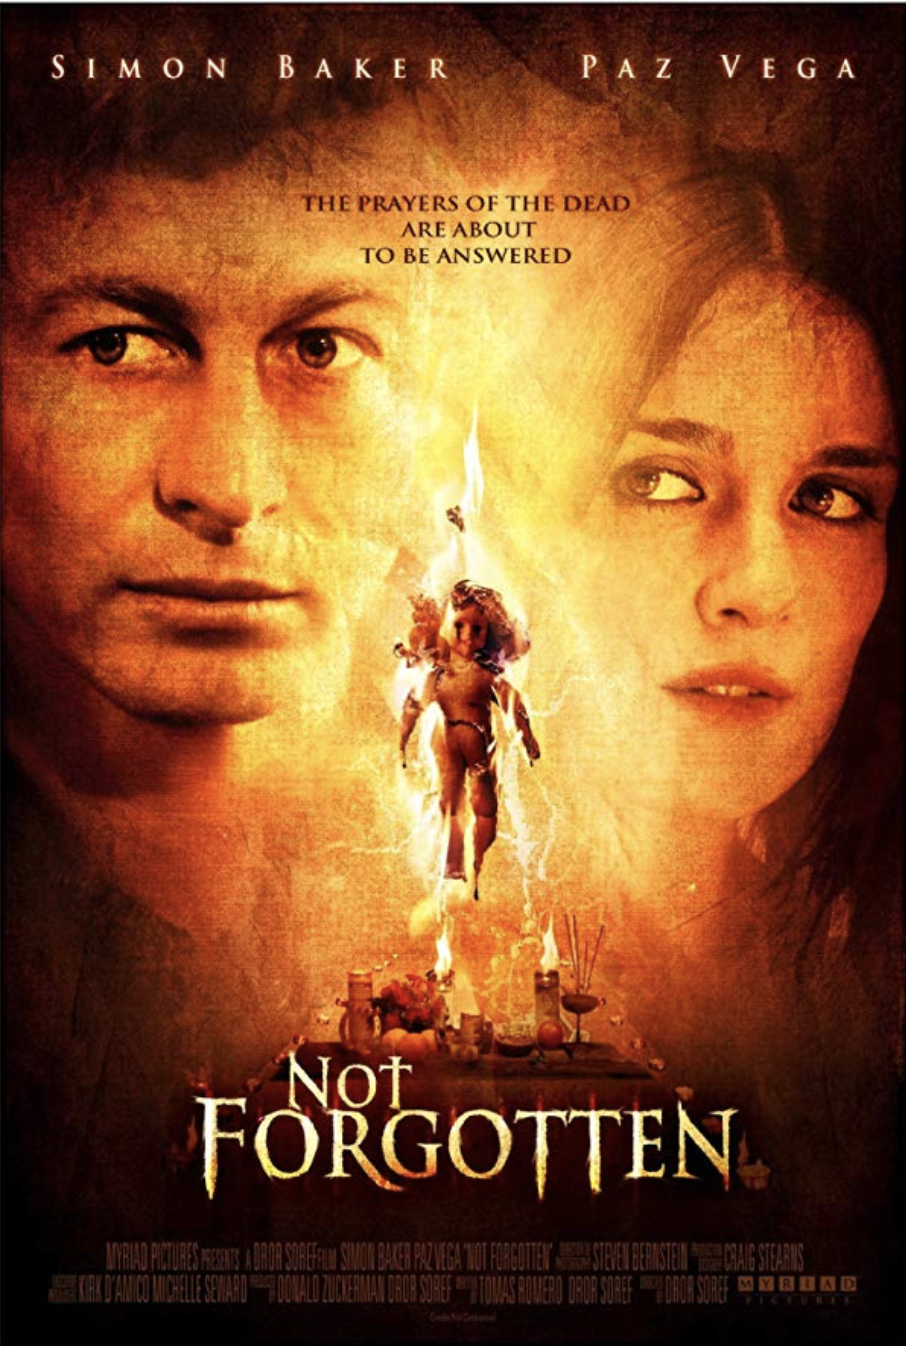 Not Forgotten   Nominated for a     Saturn Award   by the Academy of Science Fiction, Fantasy and Horror  Selected for a Special Screening at the     Slamdance Film Festival